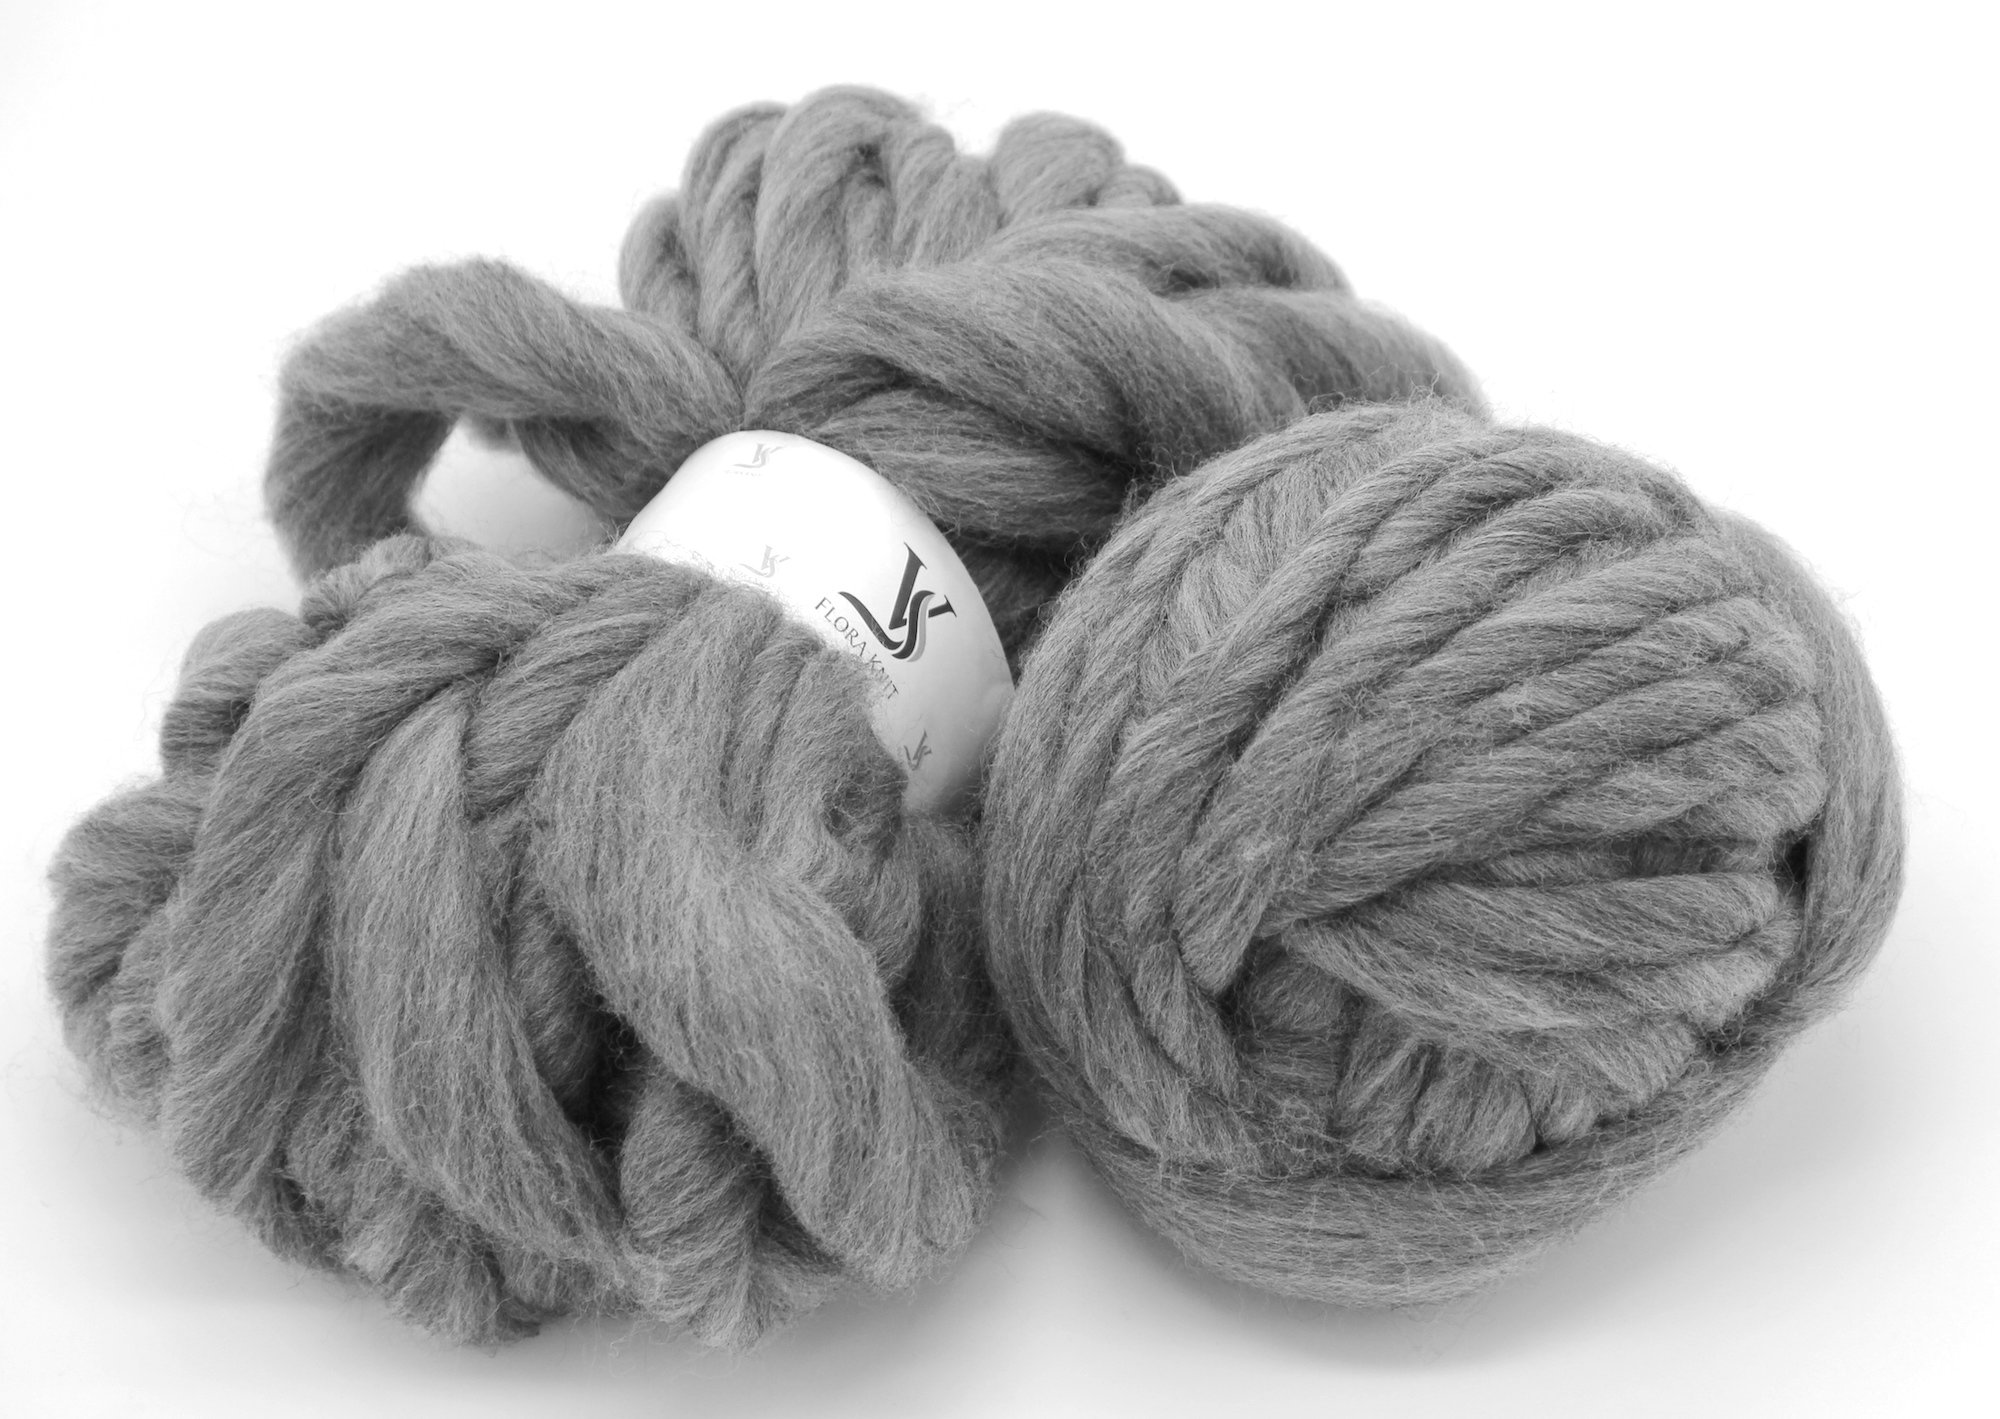 Merino Wool Super Chunky Yarn- Bulky Roving Yarn for Finger Knitting,Crocheting Felting,Making Rugs Blanket and Crafts by FLORAKNIT (Gray, Chunky-40mm-1.1LB)